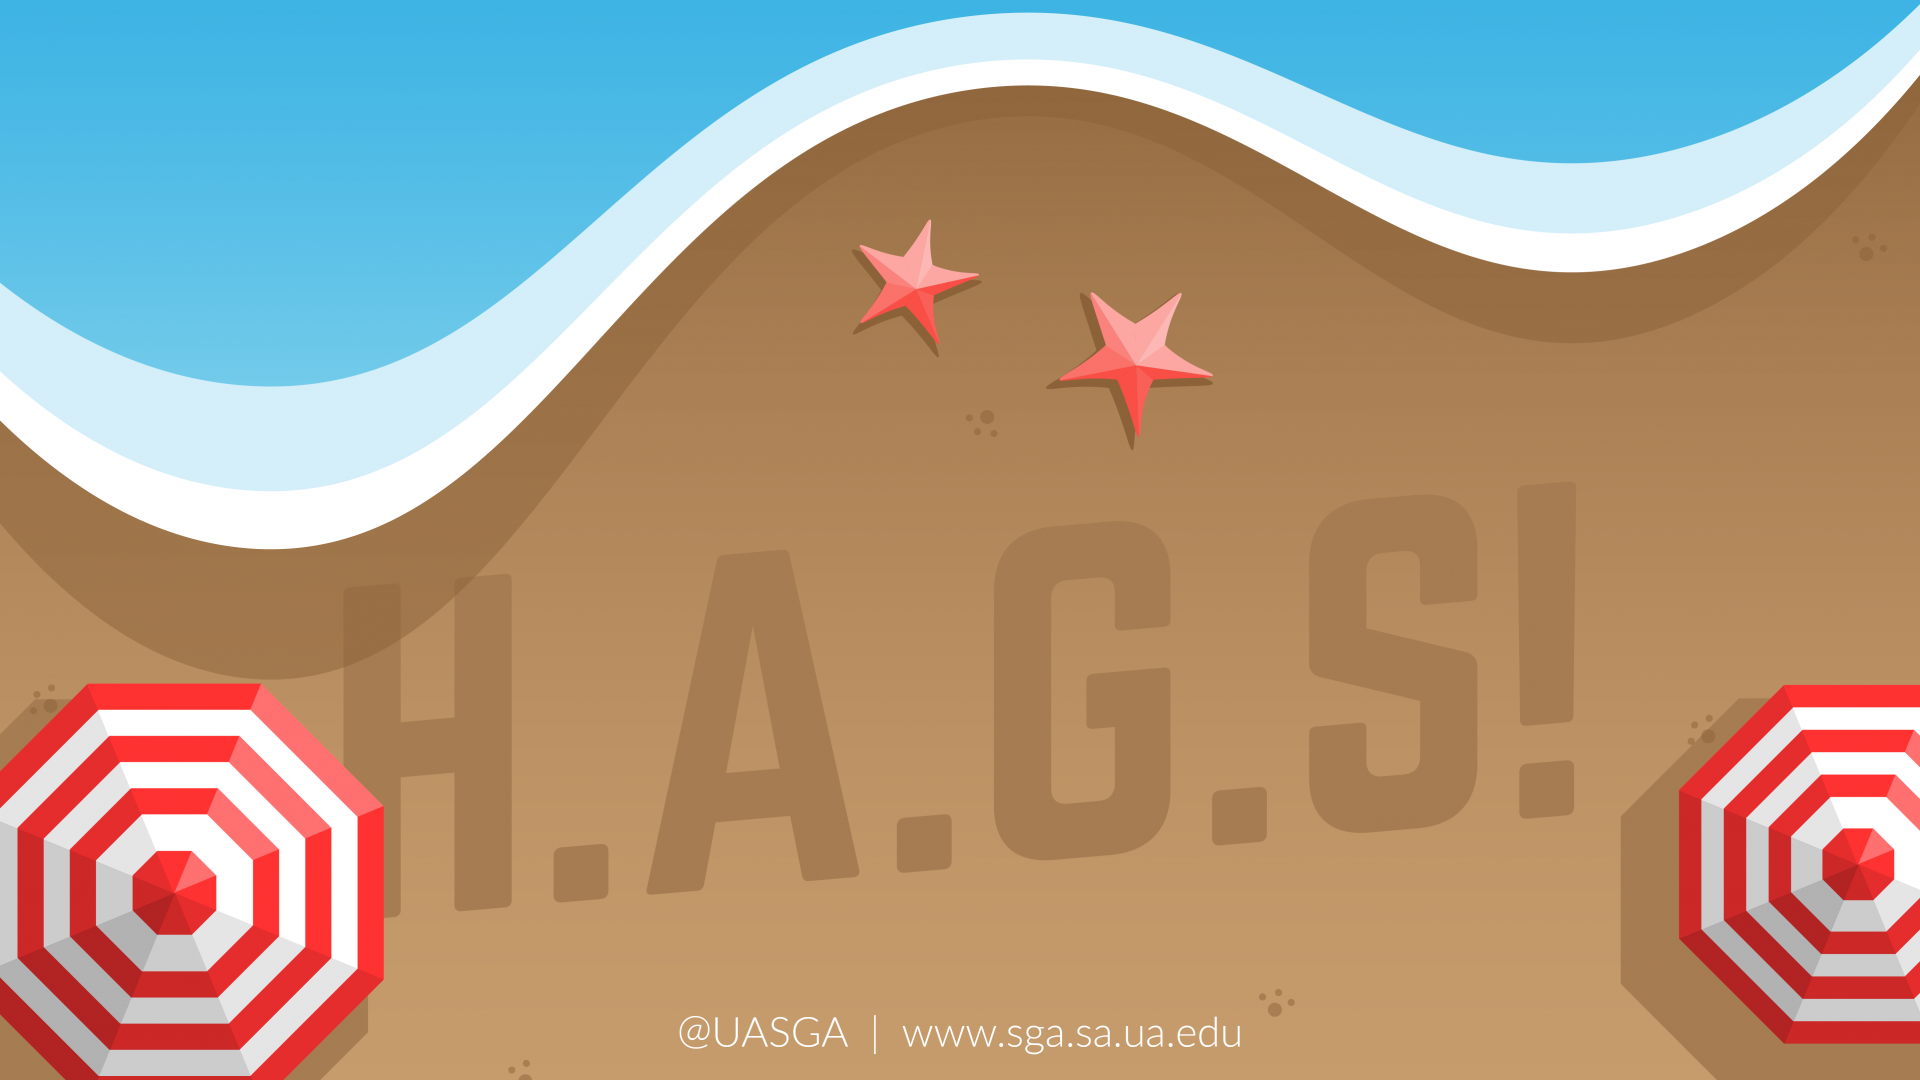 Judicial College Guidelines >> Home - Student Government Association